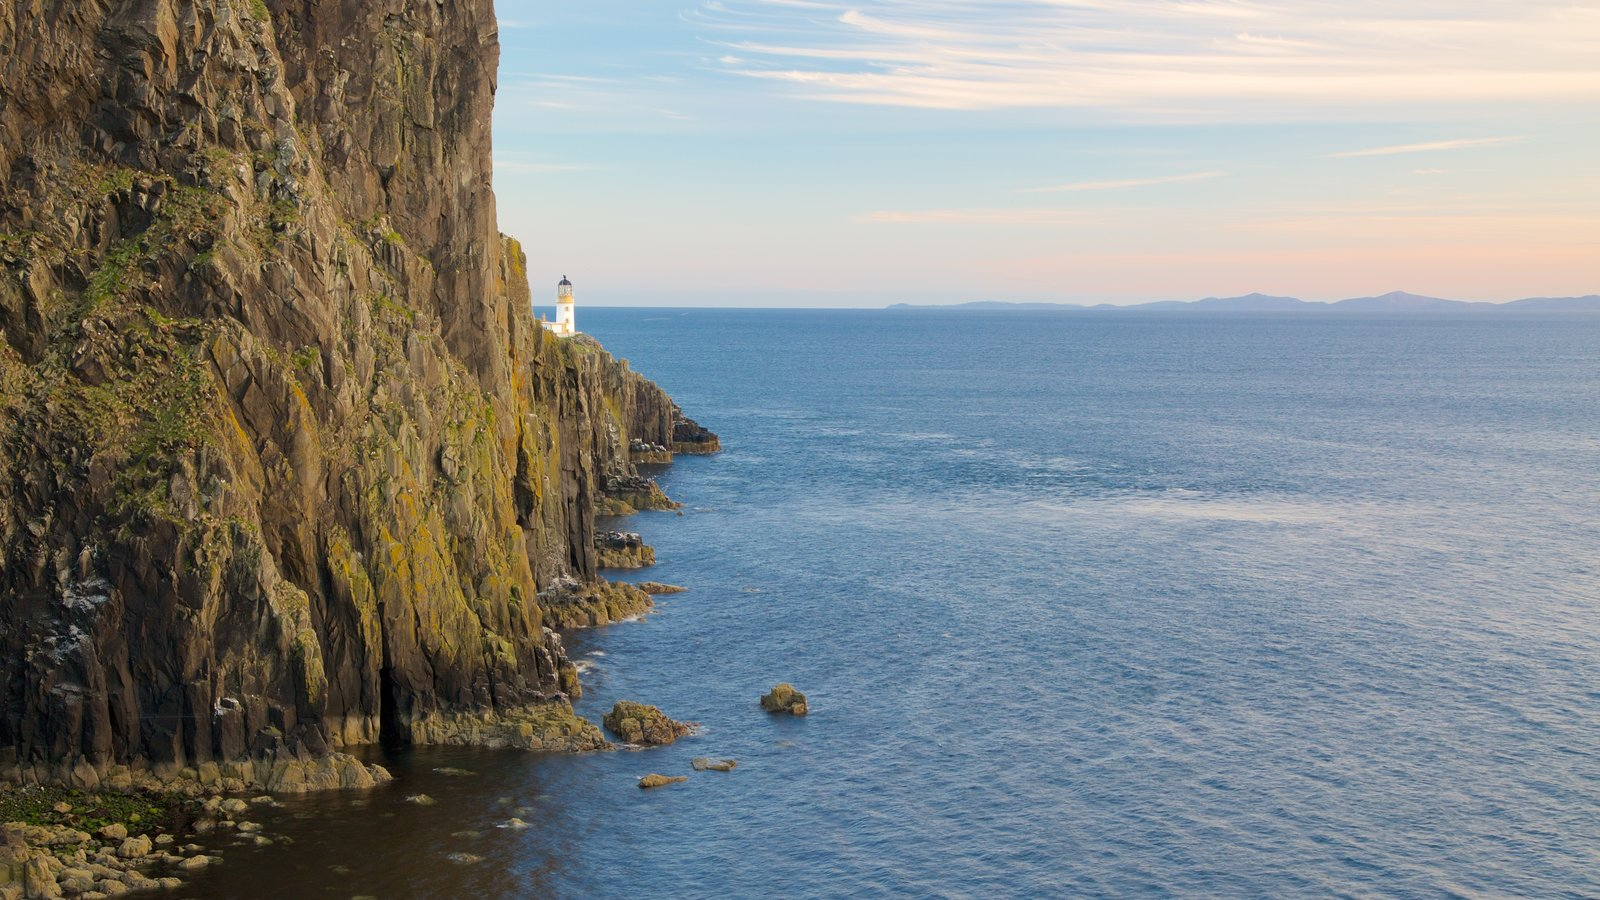 Isle of Skye which includes a lighthouse and rugged coastline